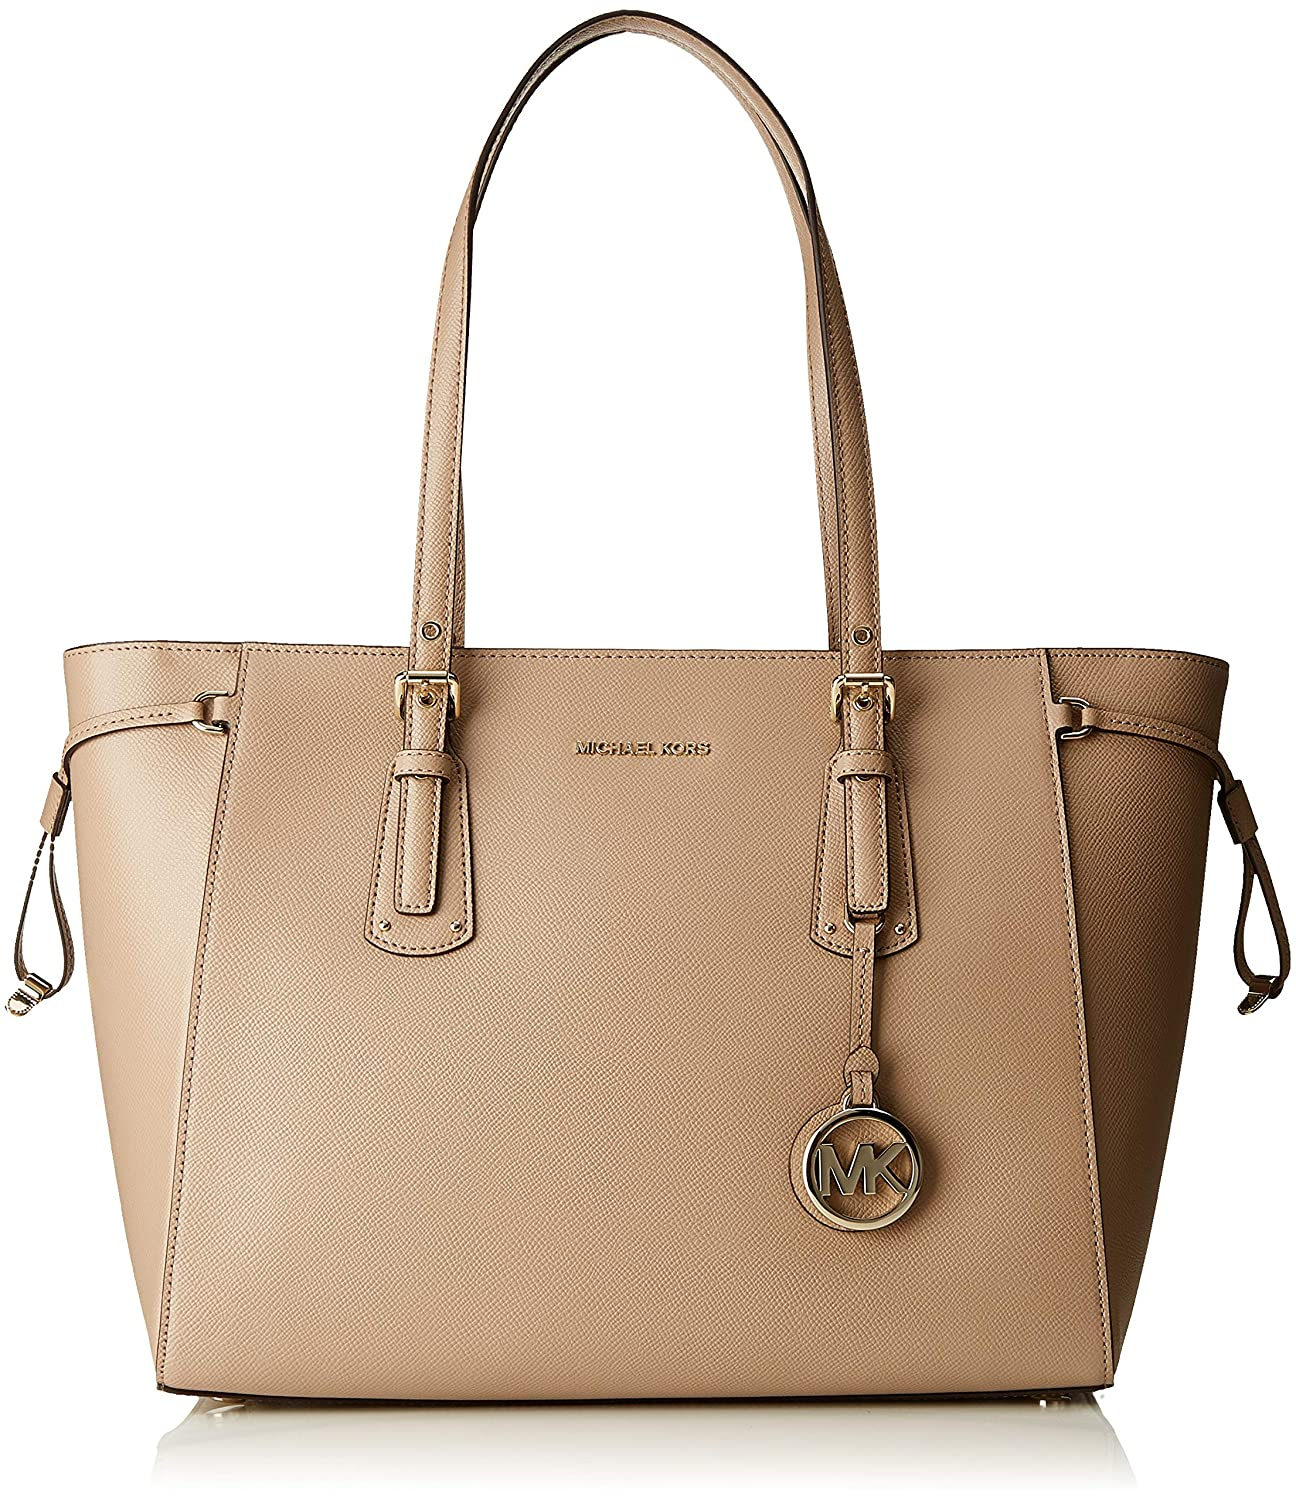 da38bc1d0ad5 Amazon.com  Women s Accessories Michael Kors Voyager Truffle Beige Tote Bag  Spring Summer 2018  Clothing